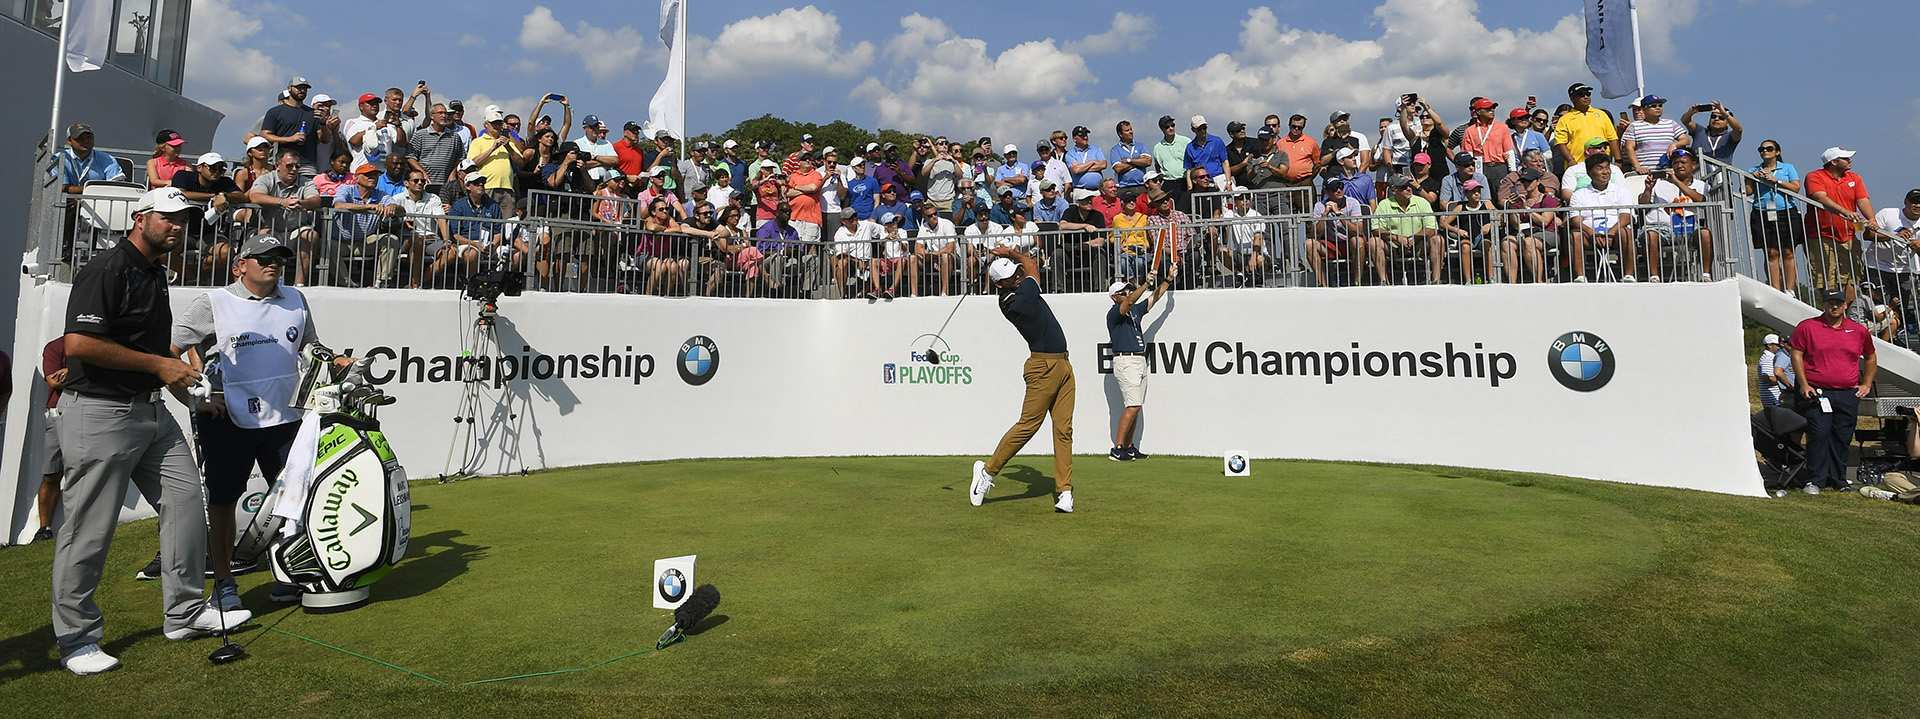 15 All New 2019 Bmw Championship Dates Wallpaper for 2019 Bmw Championship Dates